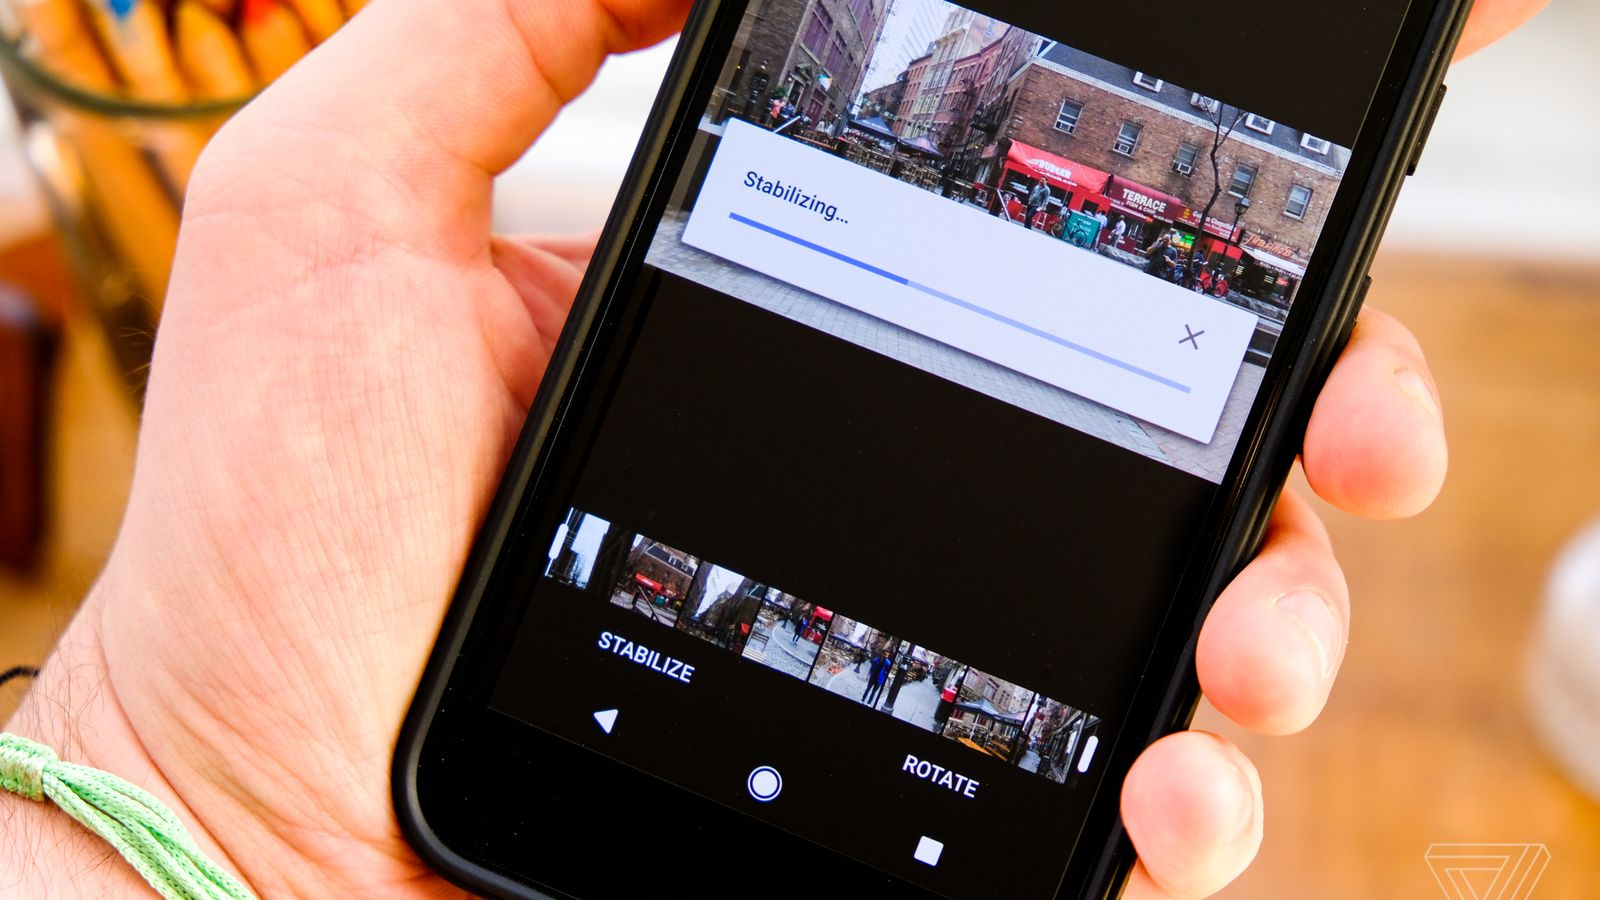 Google Photos can now stabilize all your shaky phone camera videos